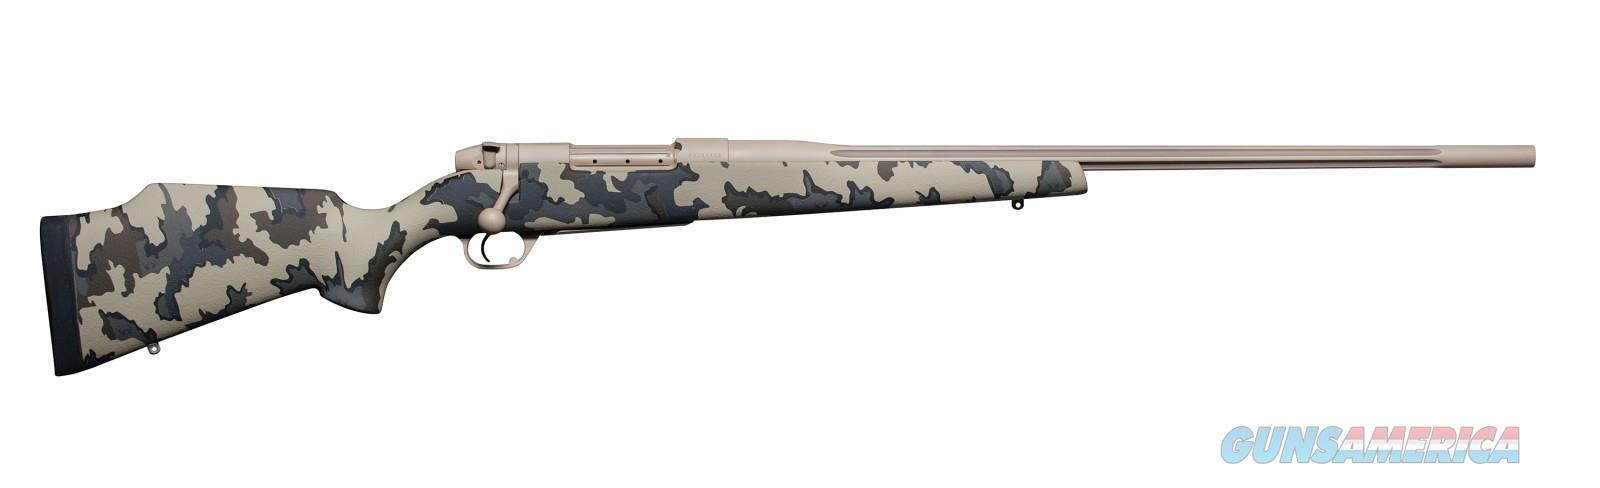 "Weatherby Mark V Arroyo .338 Lapua 28"" MAOM338LR8B  Guns > Rifles > Weatherby Rifles > Sporting"